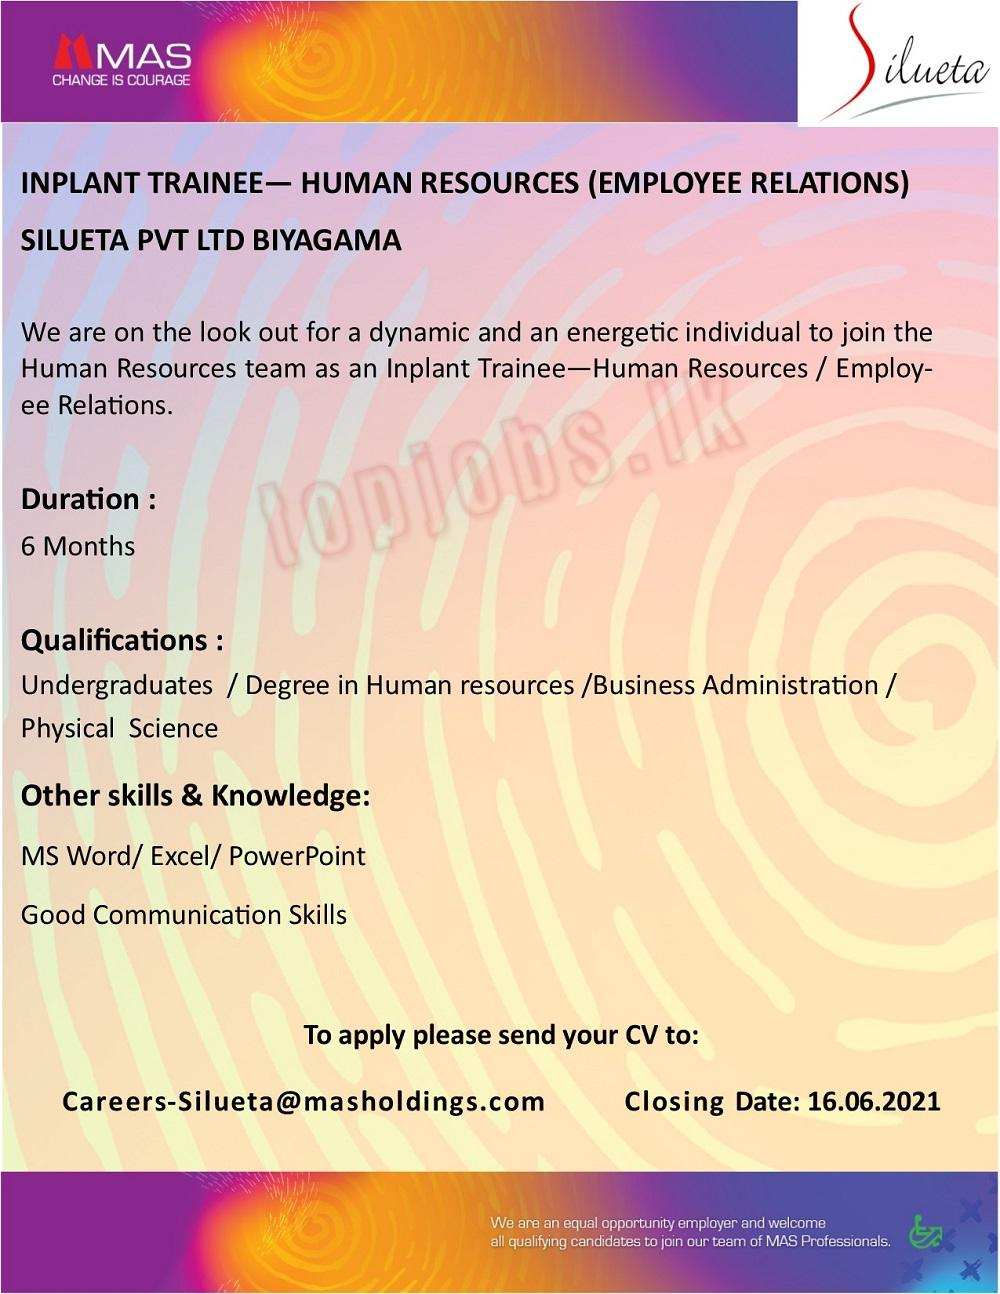 Inplant Trainee - Human Resources ( Employee Relations)